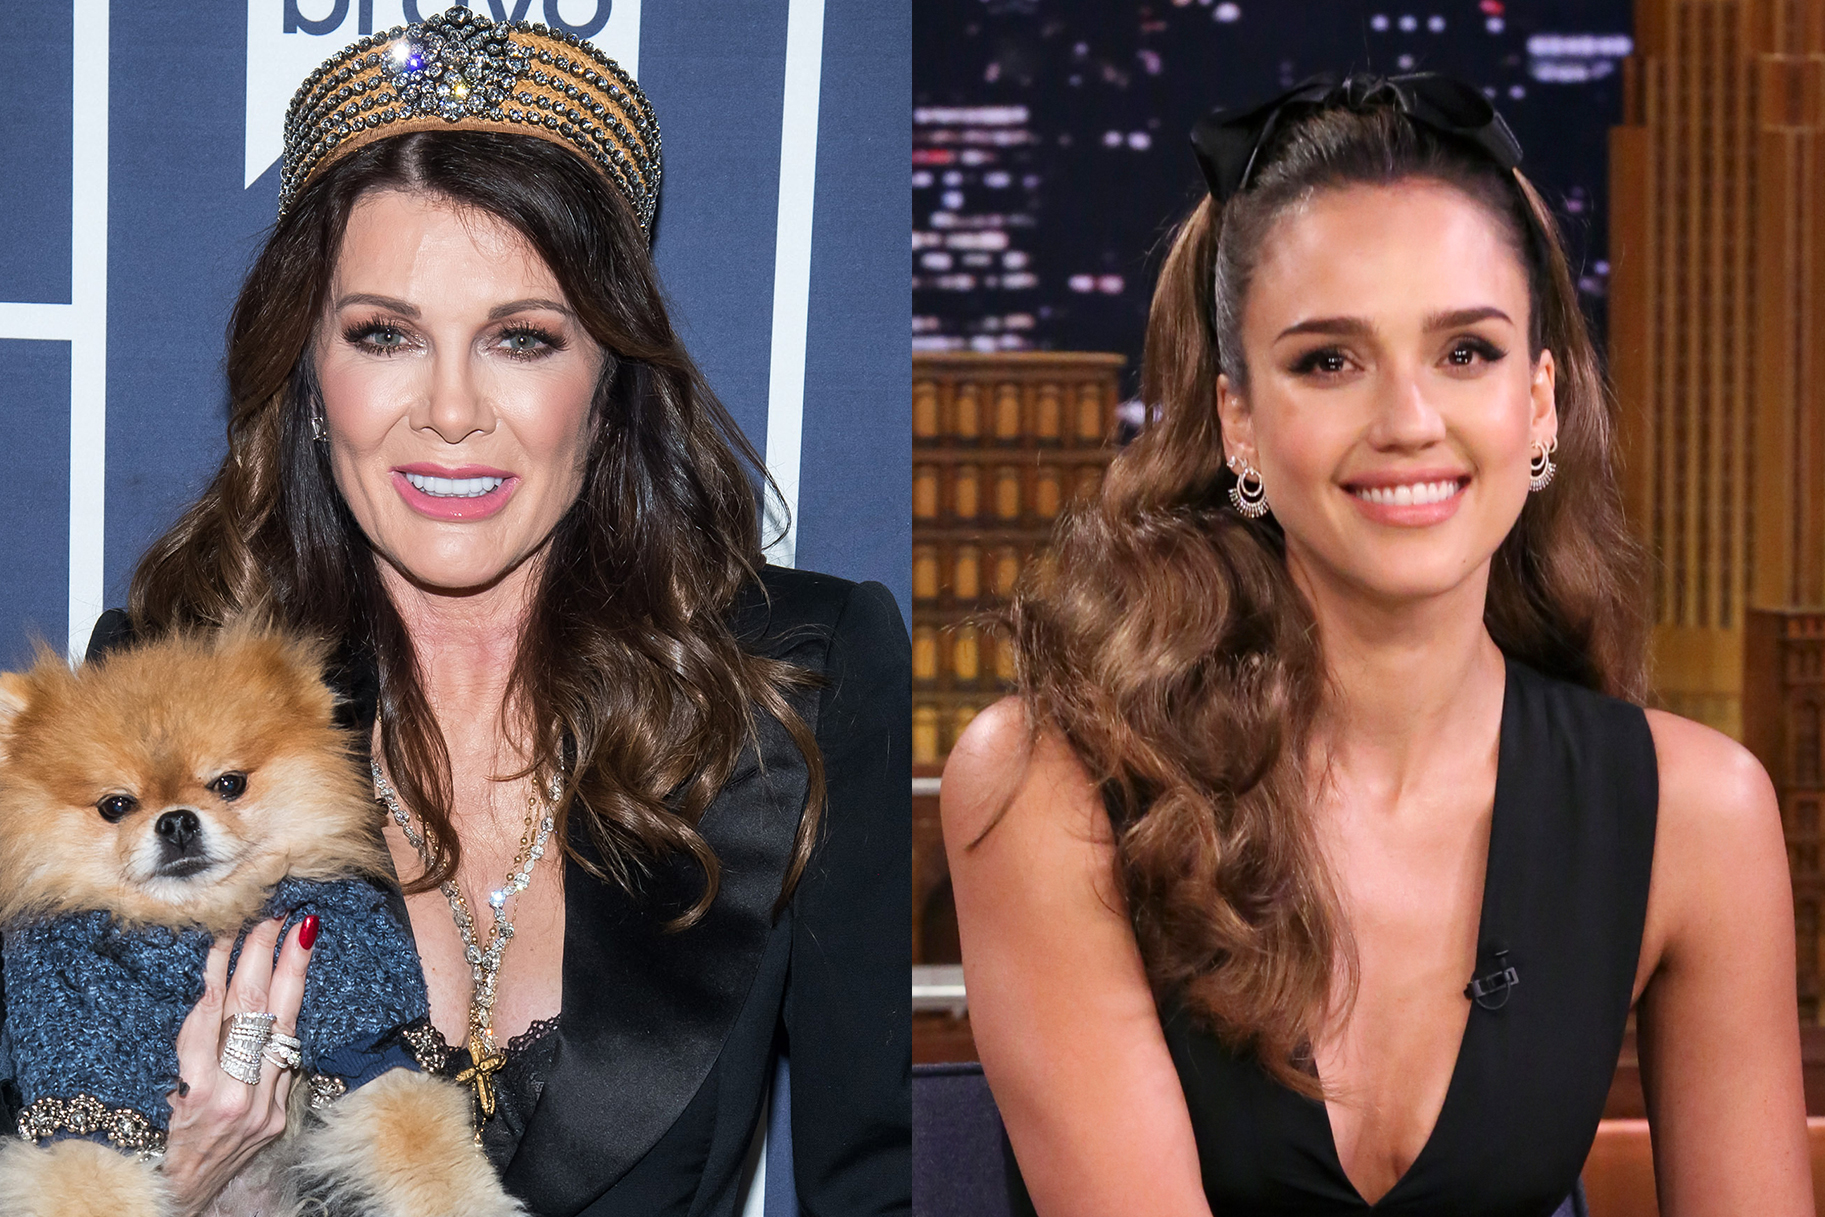 Lisa Vanderpump and Jessica Alba